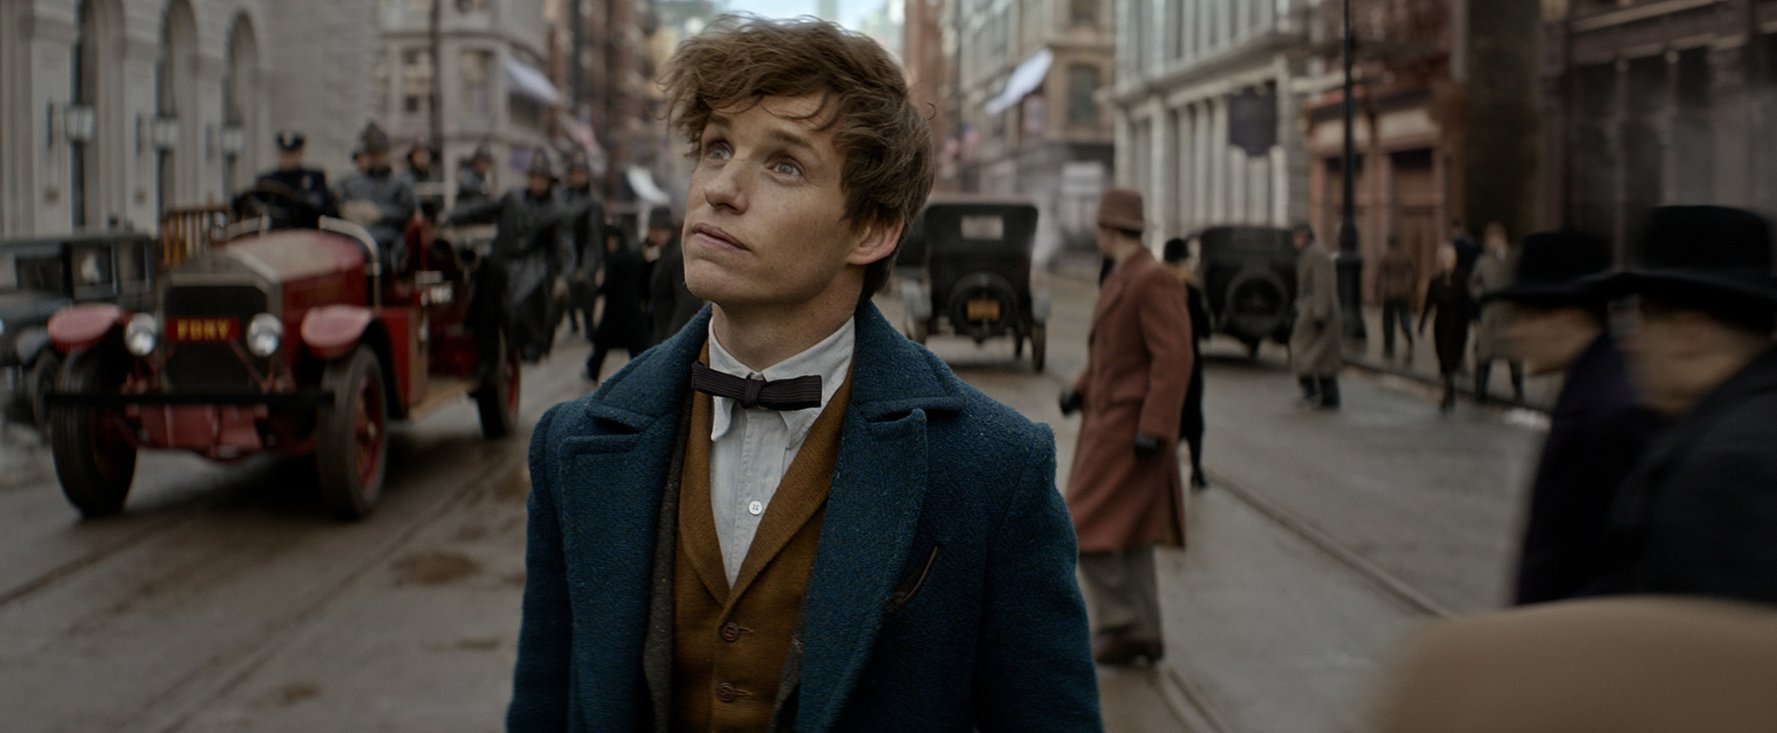 fantastic-beasts-still-04